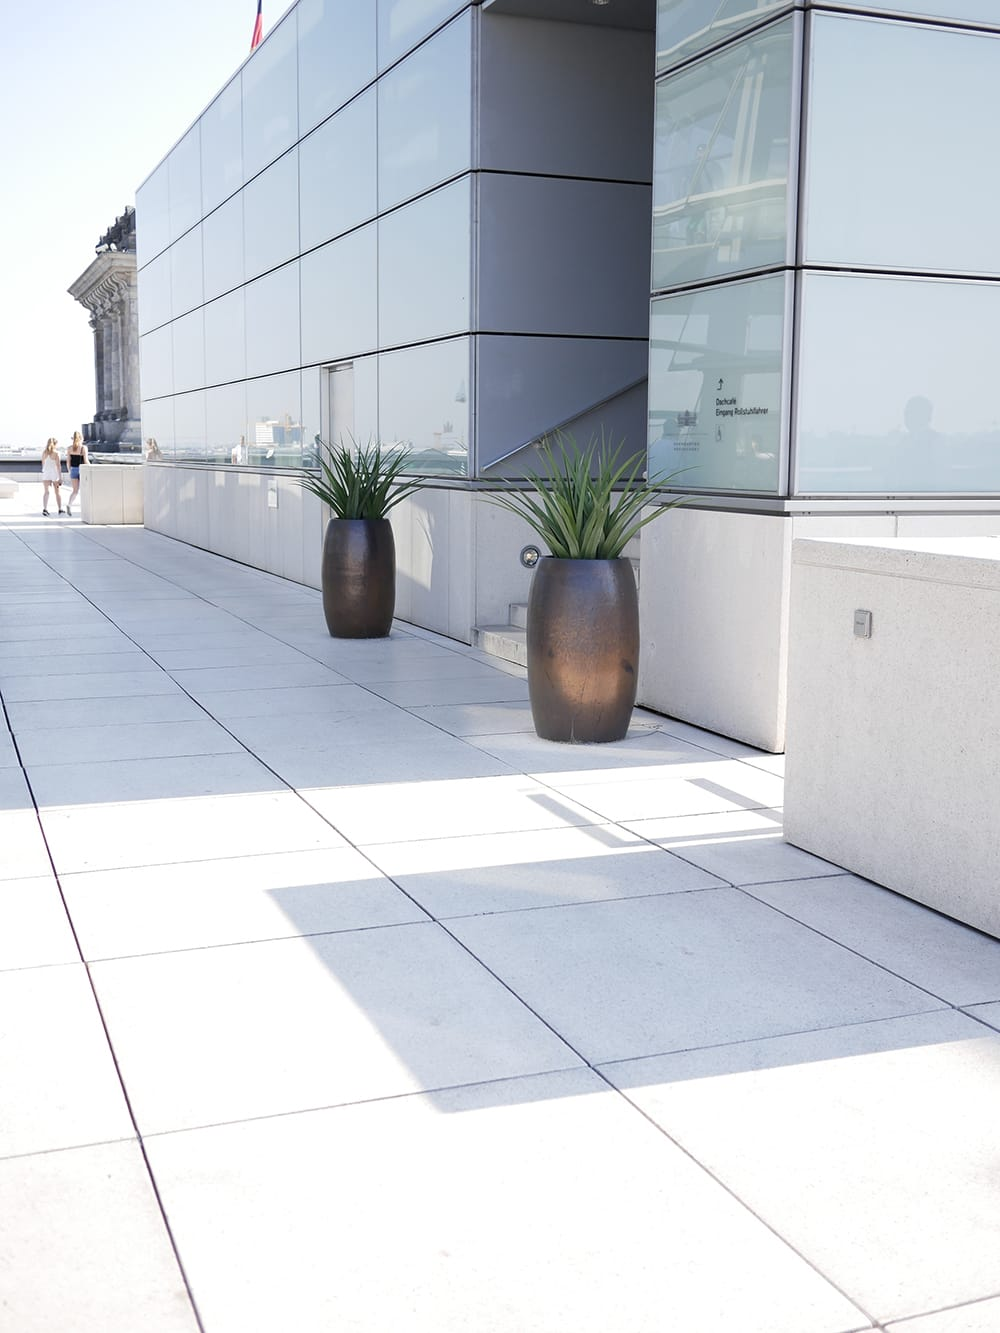 A sunny roof of a museum with two big flowerpots in front of glass facade. Berlin